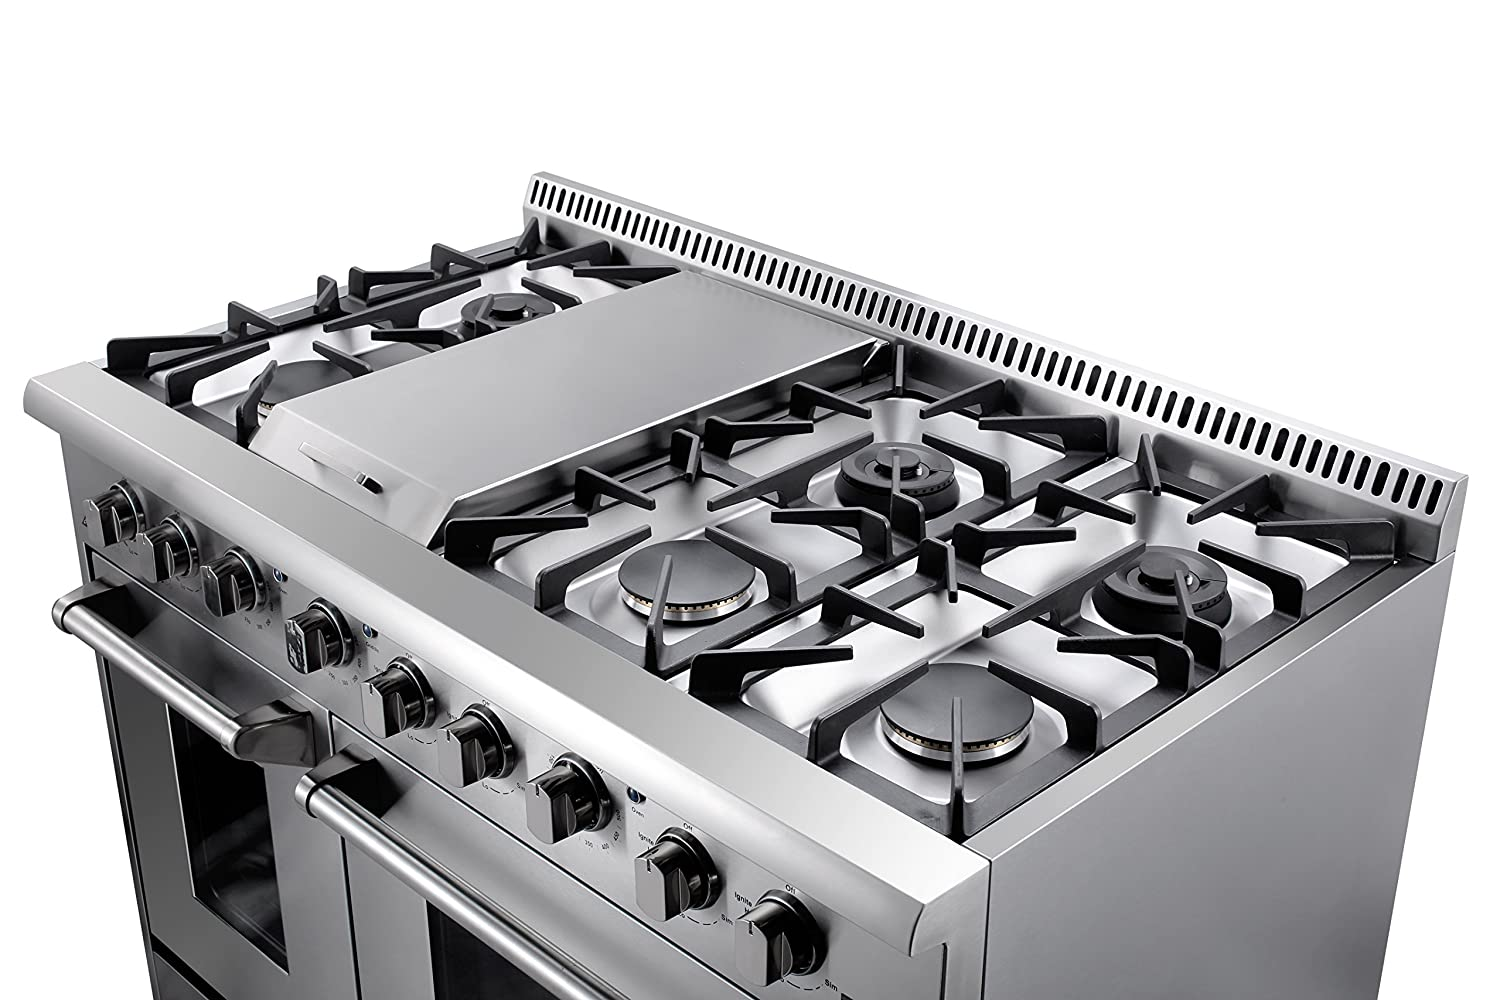 Amazon.com: Thor Kitchen Gas Range with 6 Burners and Double Ovens ...